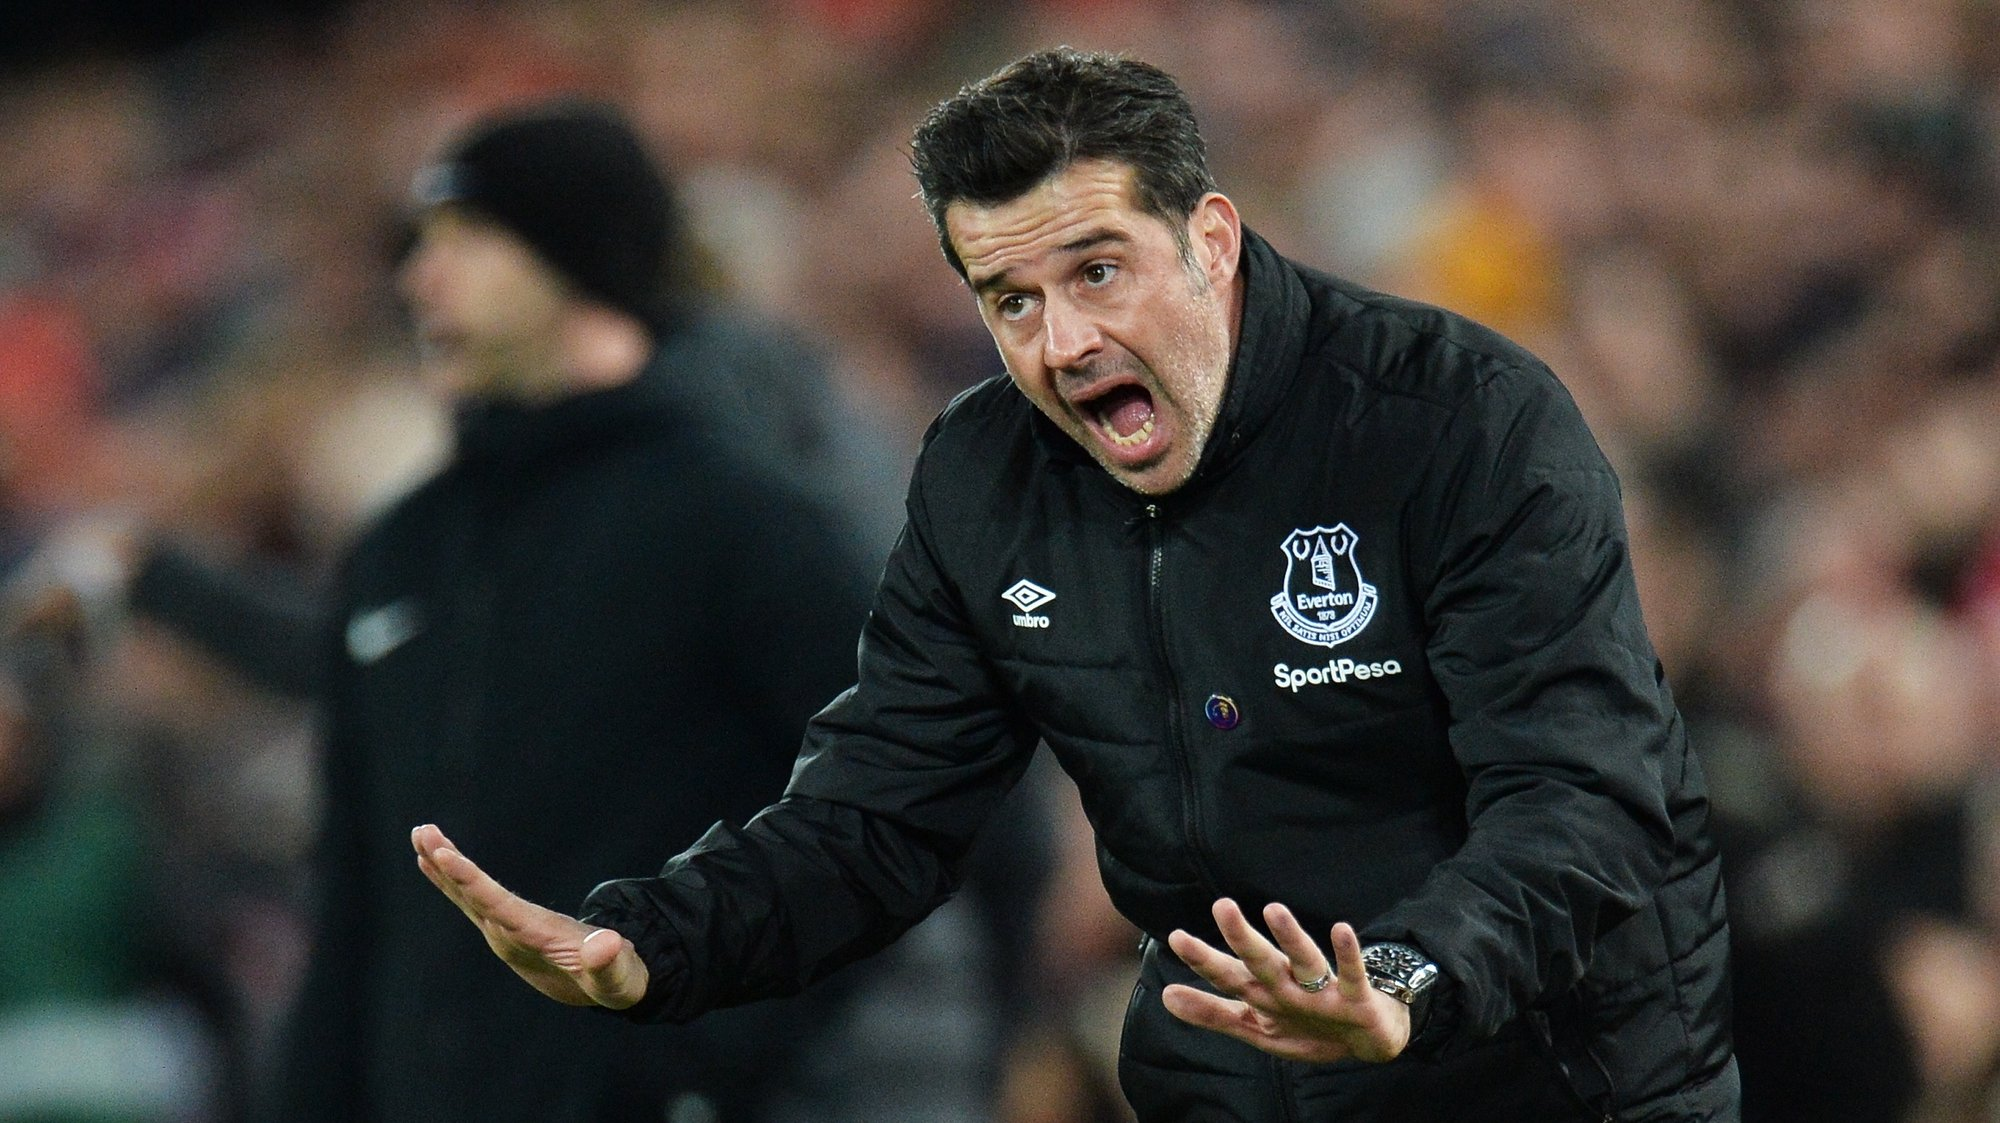 epa08044966 Everton manager Marco Silva gestures on the touchline during the English Premier League soccer match between Liverpool FC and Everton in Liverpool, Britain, 04 December 2019.  EPA/Peter Powell EDITORIAL USE ONLY. No use with unauthorized audio, video, data, fixture lists, club/league logos or 'live' services. Online in-match use limited to 120 images, no video emulation. No use in betting, games or single club/league/player publications